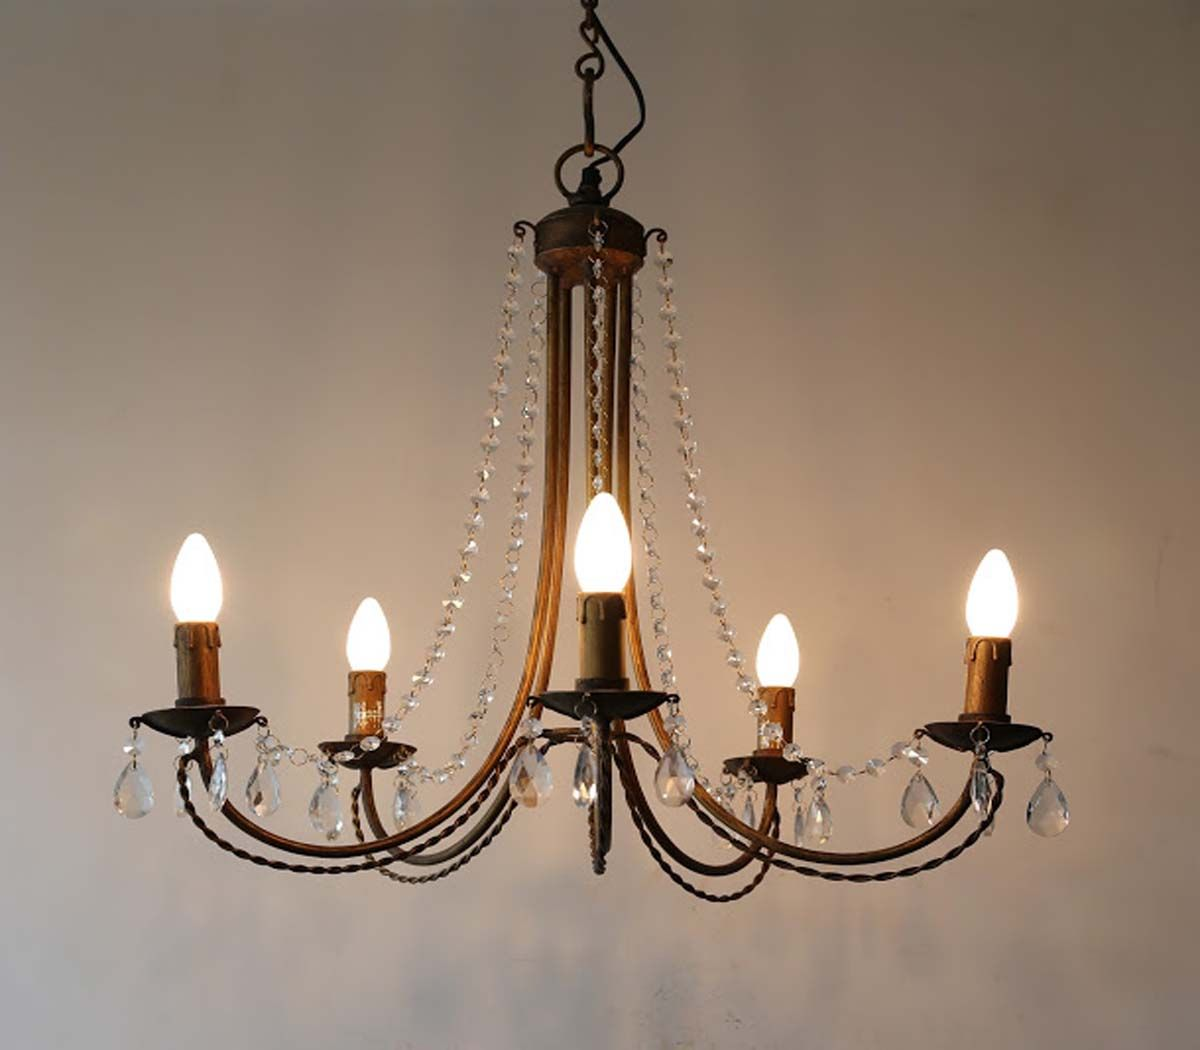 Golden distress chandelier materialtype wrought iron color golden